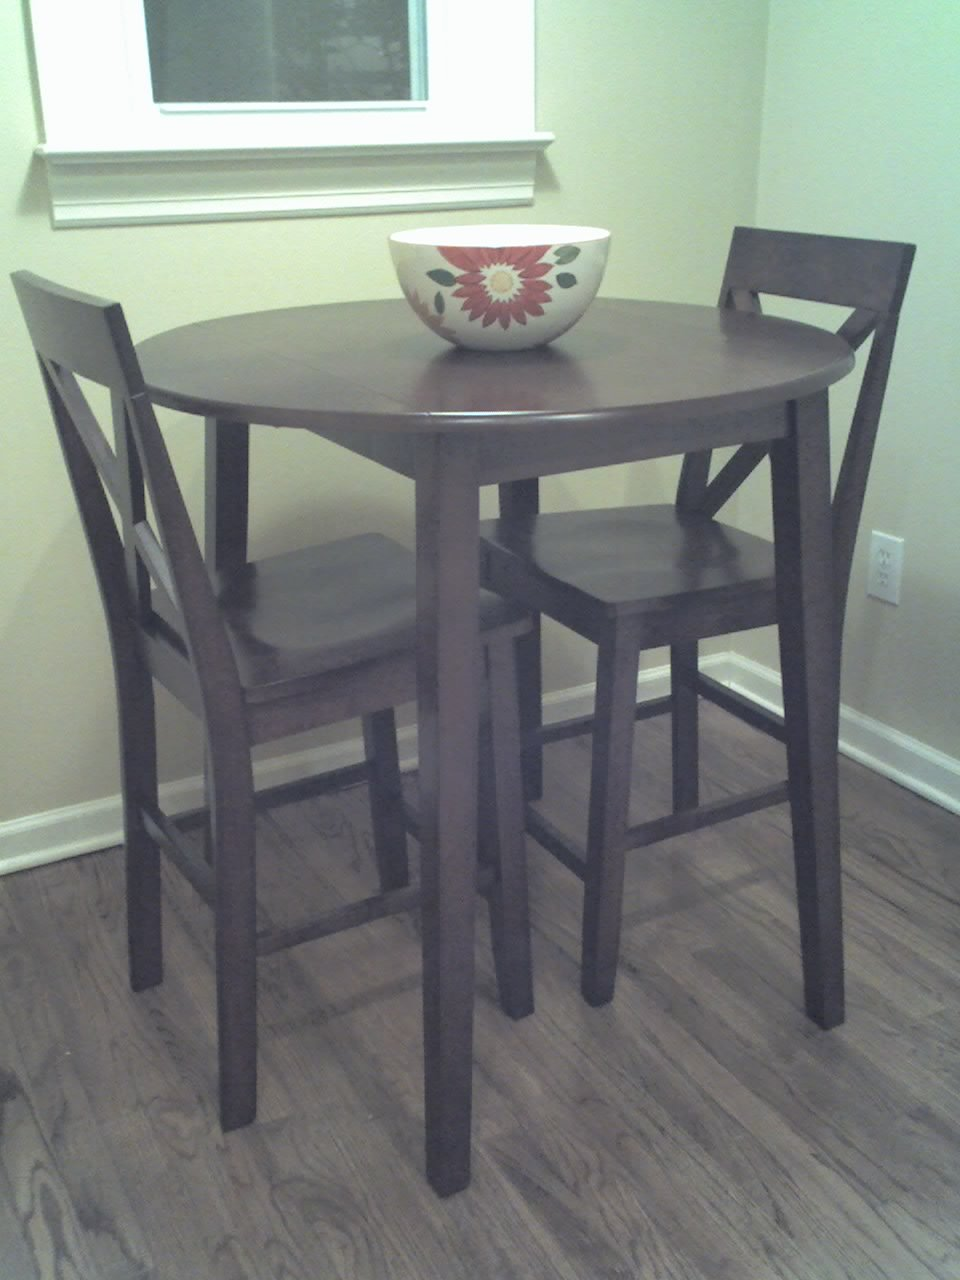 Kitchen Chairs Tall Kitchen Table Chair Repainting Butcher Block Kitchen Table